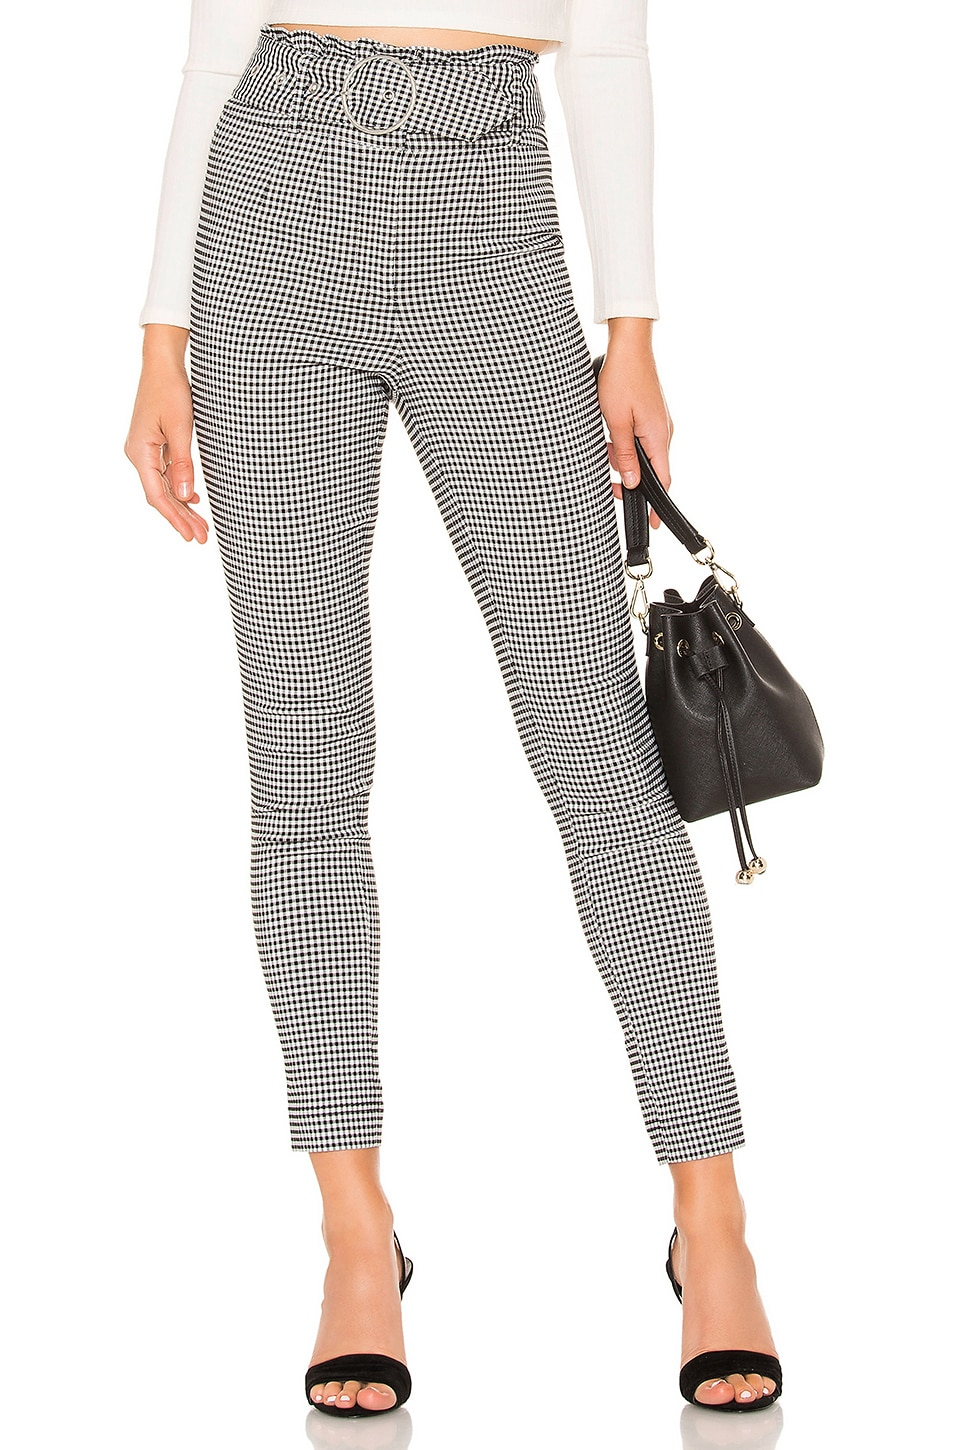 Tularosa Marz Skinny Pants in Black & White